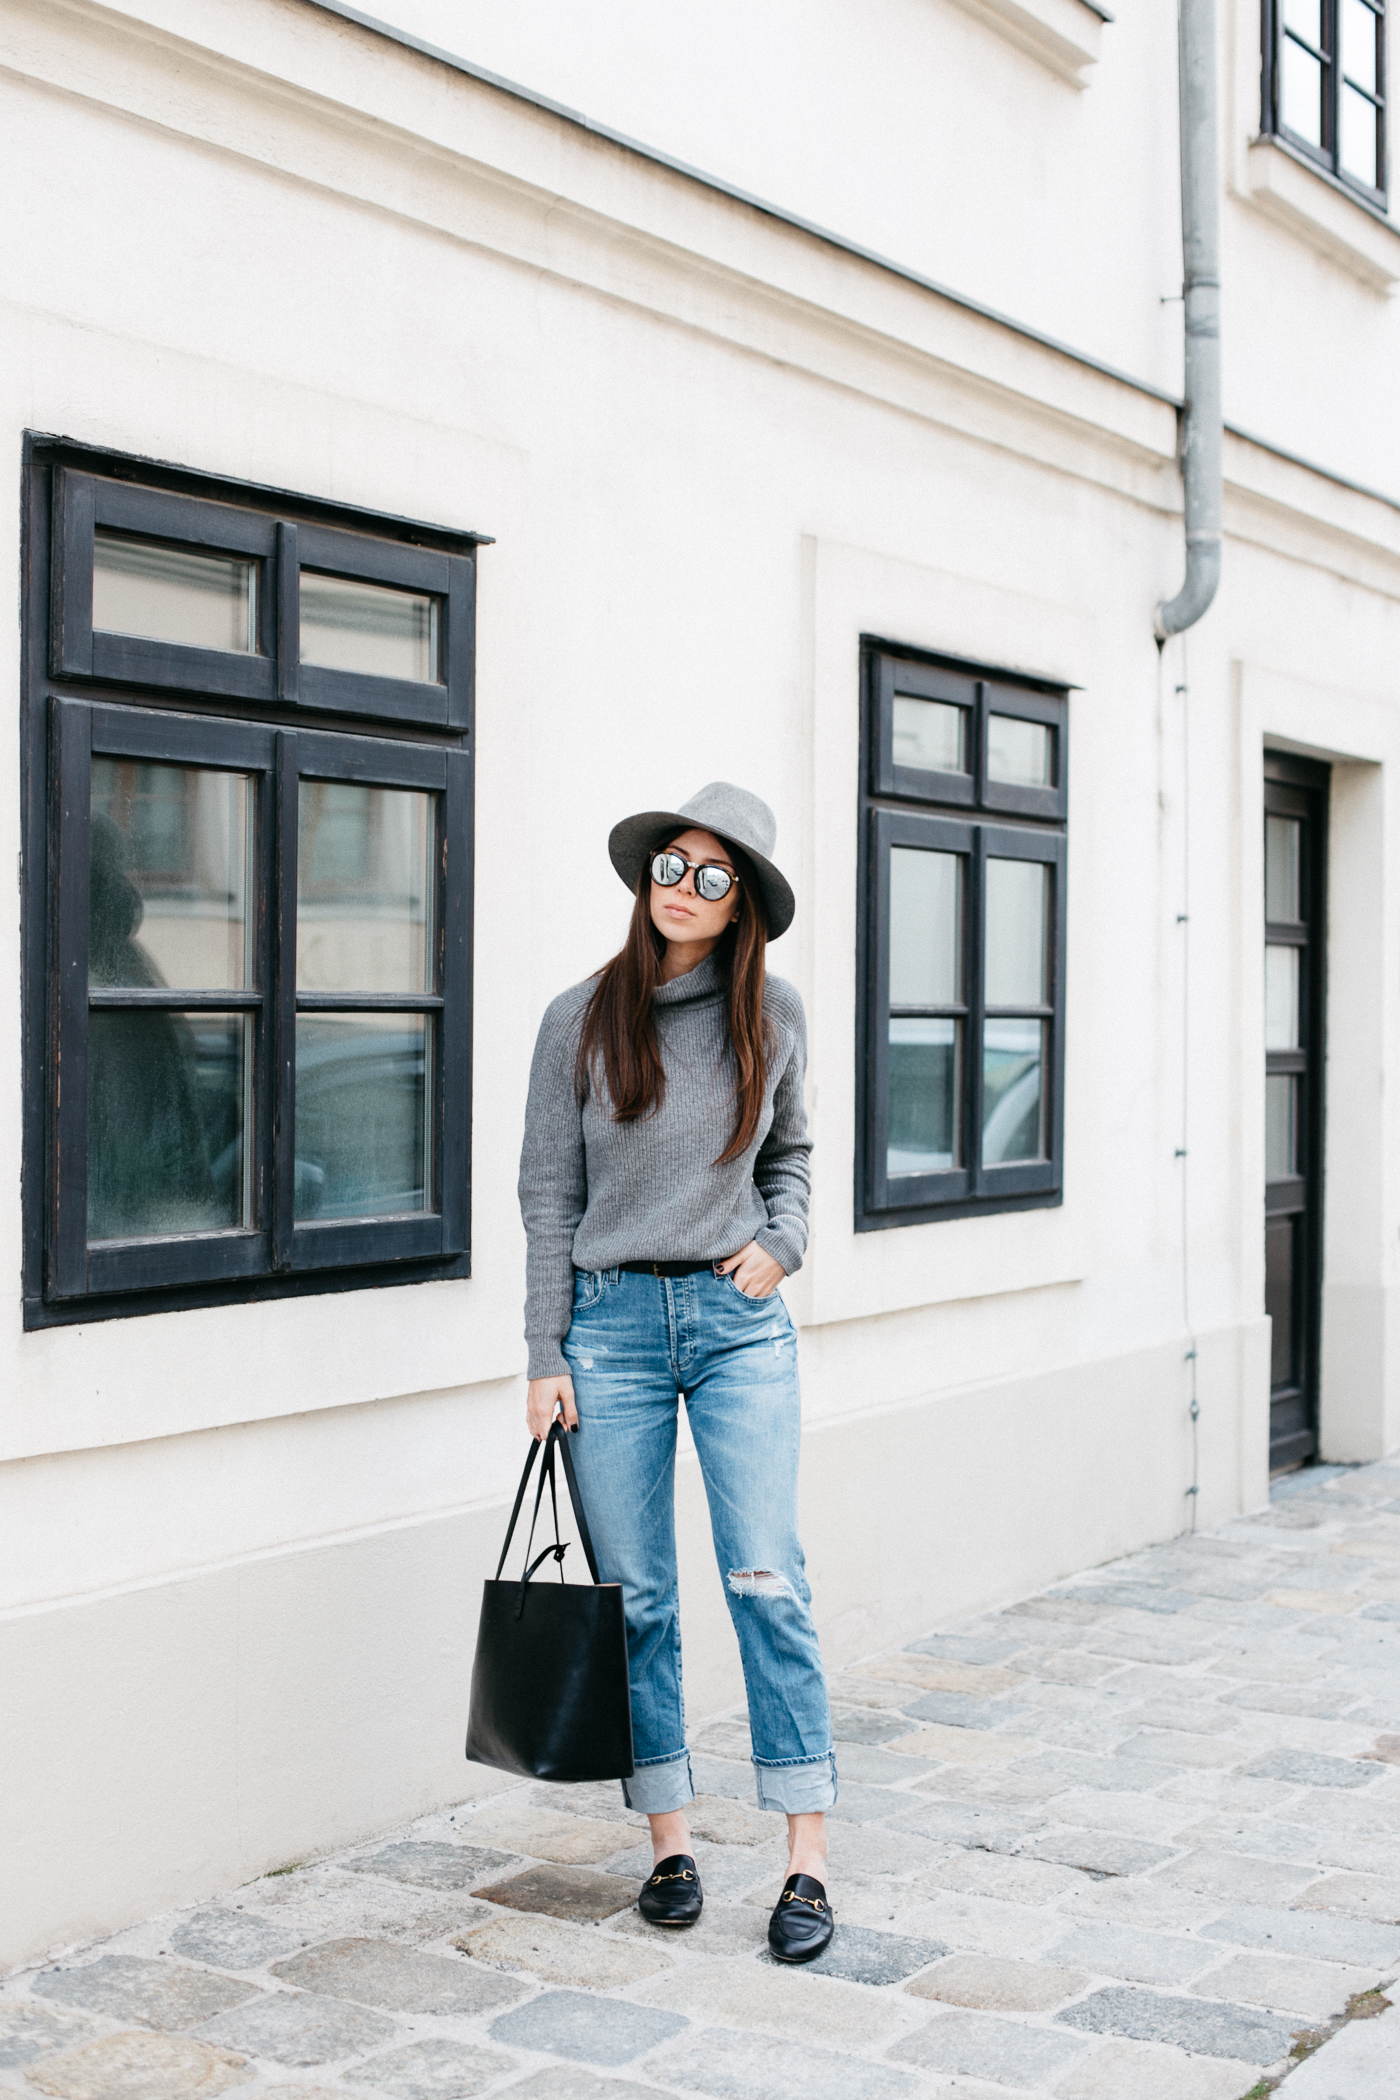 OUTFIT: basics + a hat.